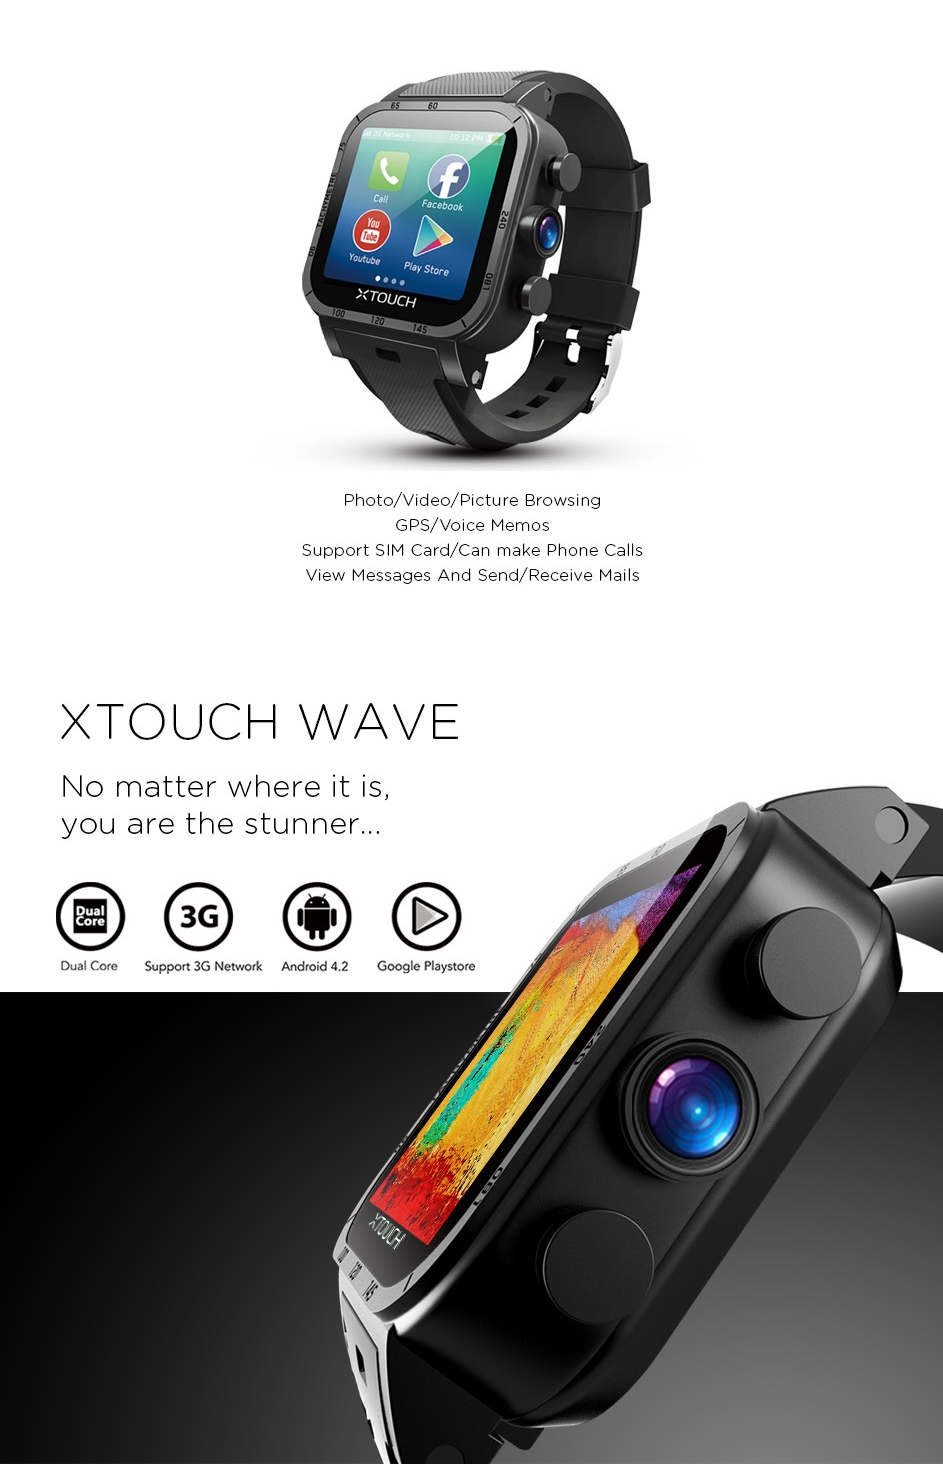 xtouch-wave1